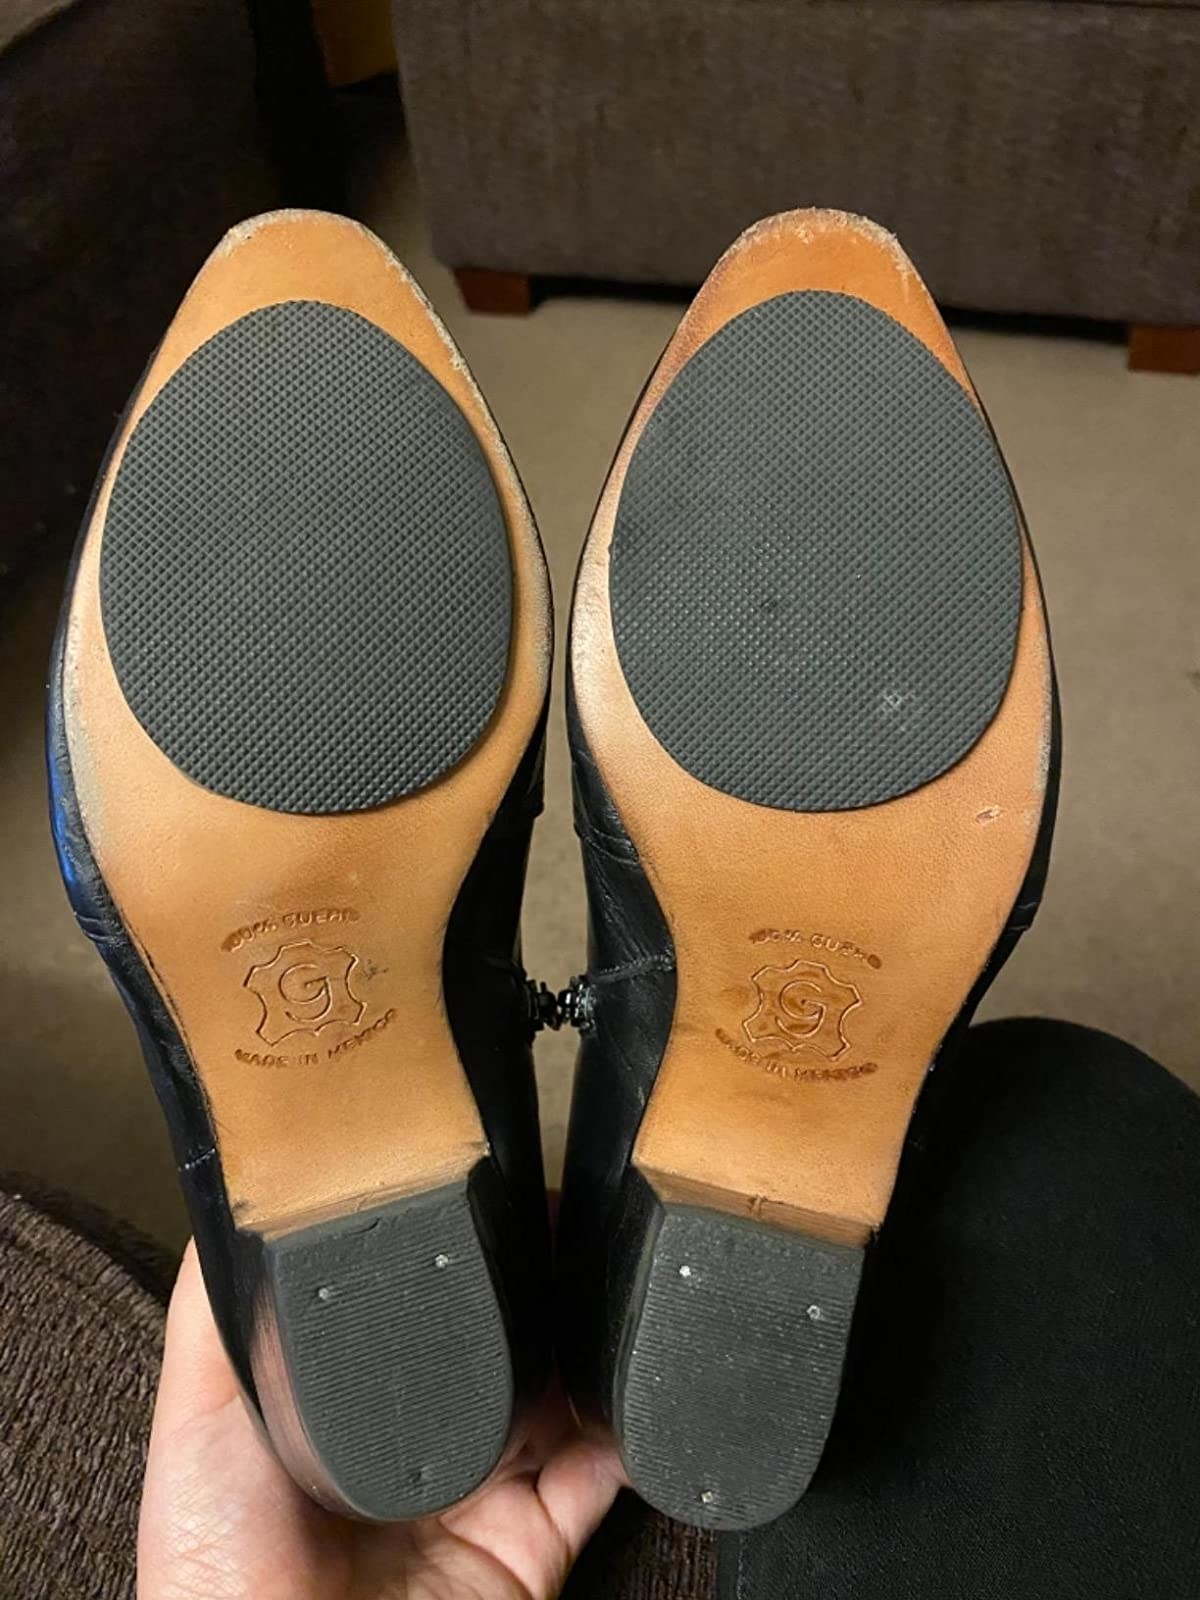 Reviewer showing pads on bottom of shoes